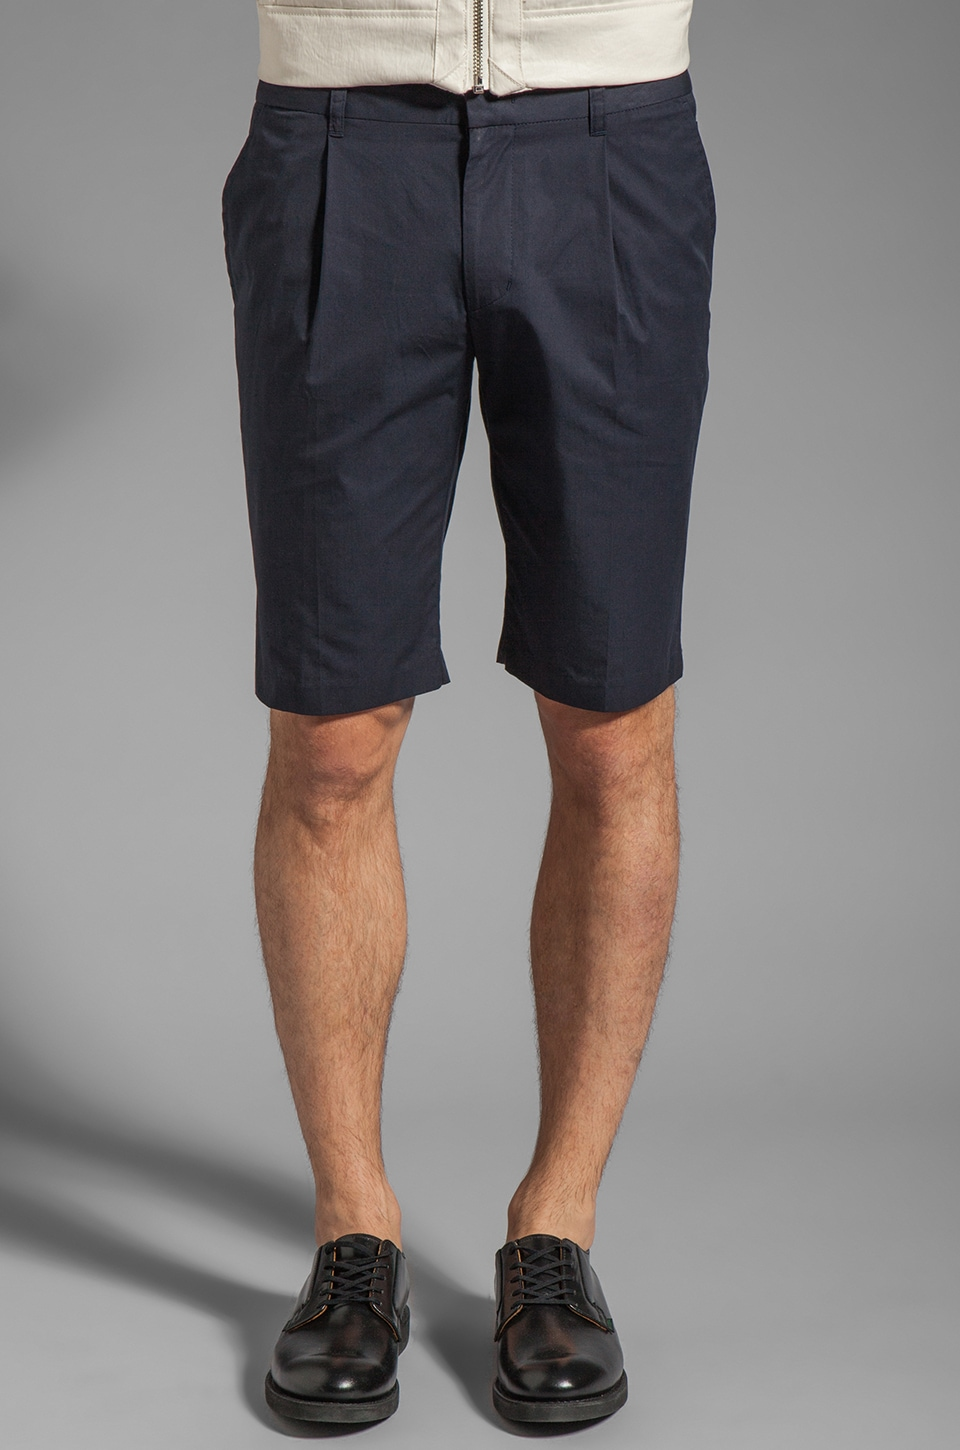 Kai-aakmann Shorts in Navy